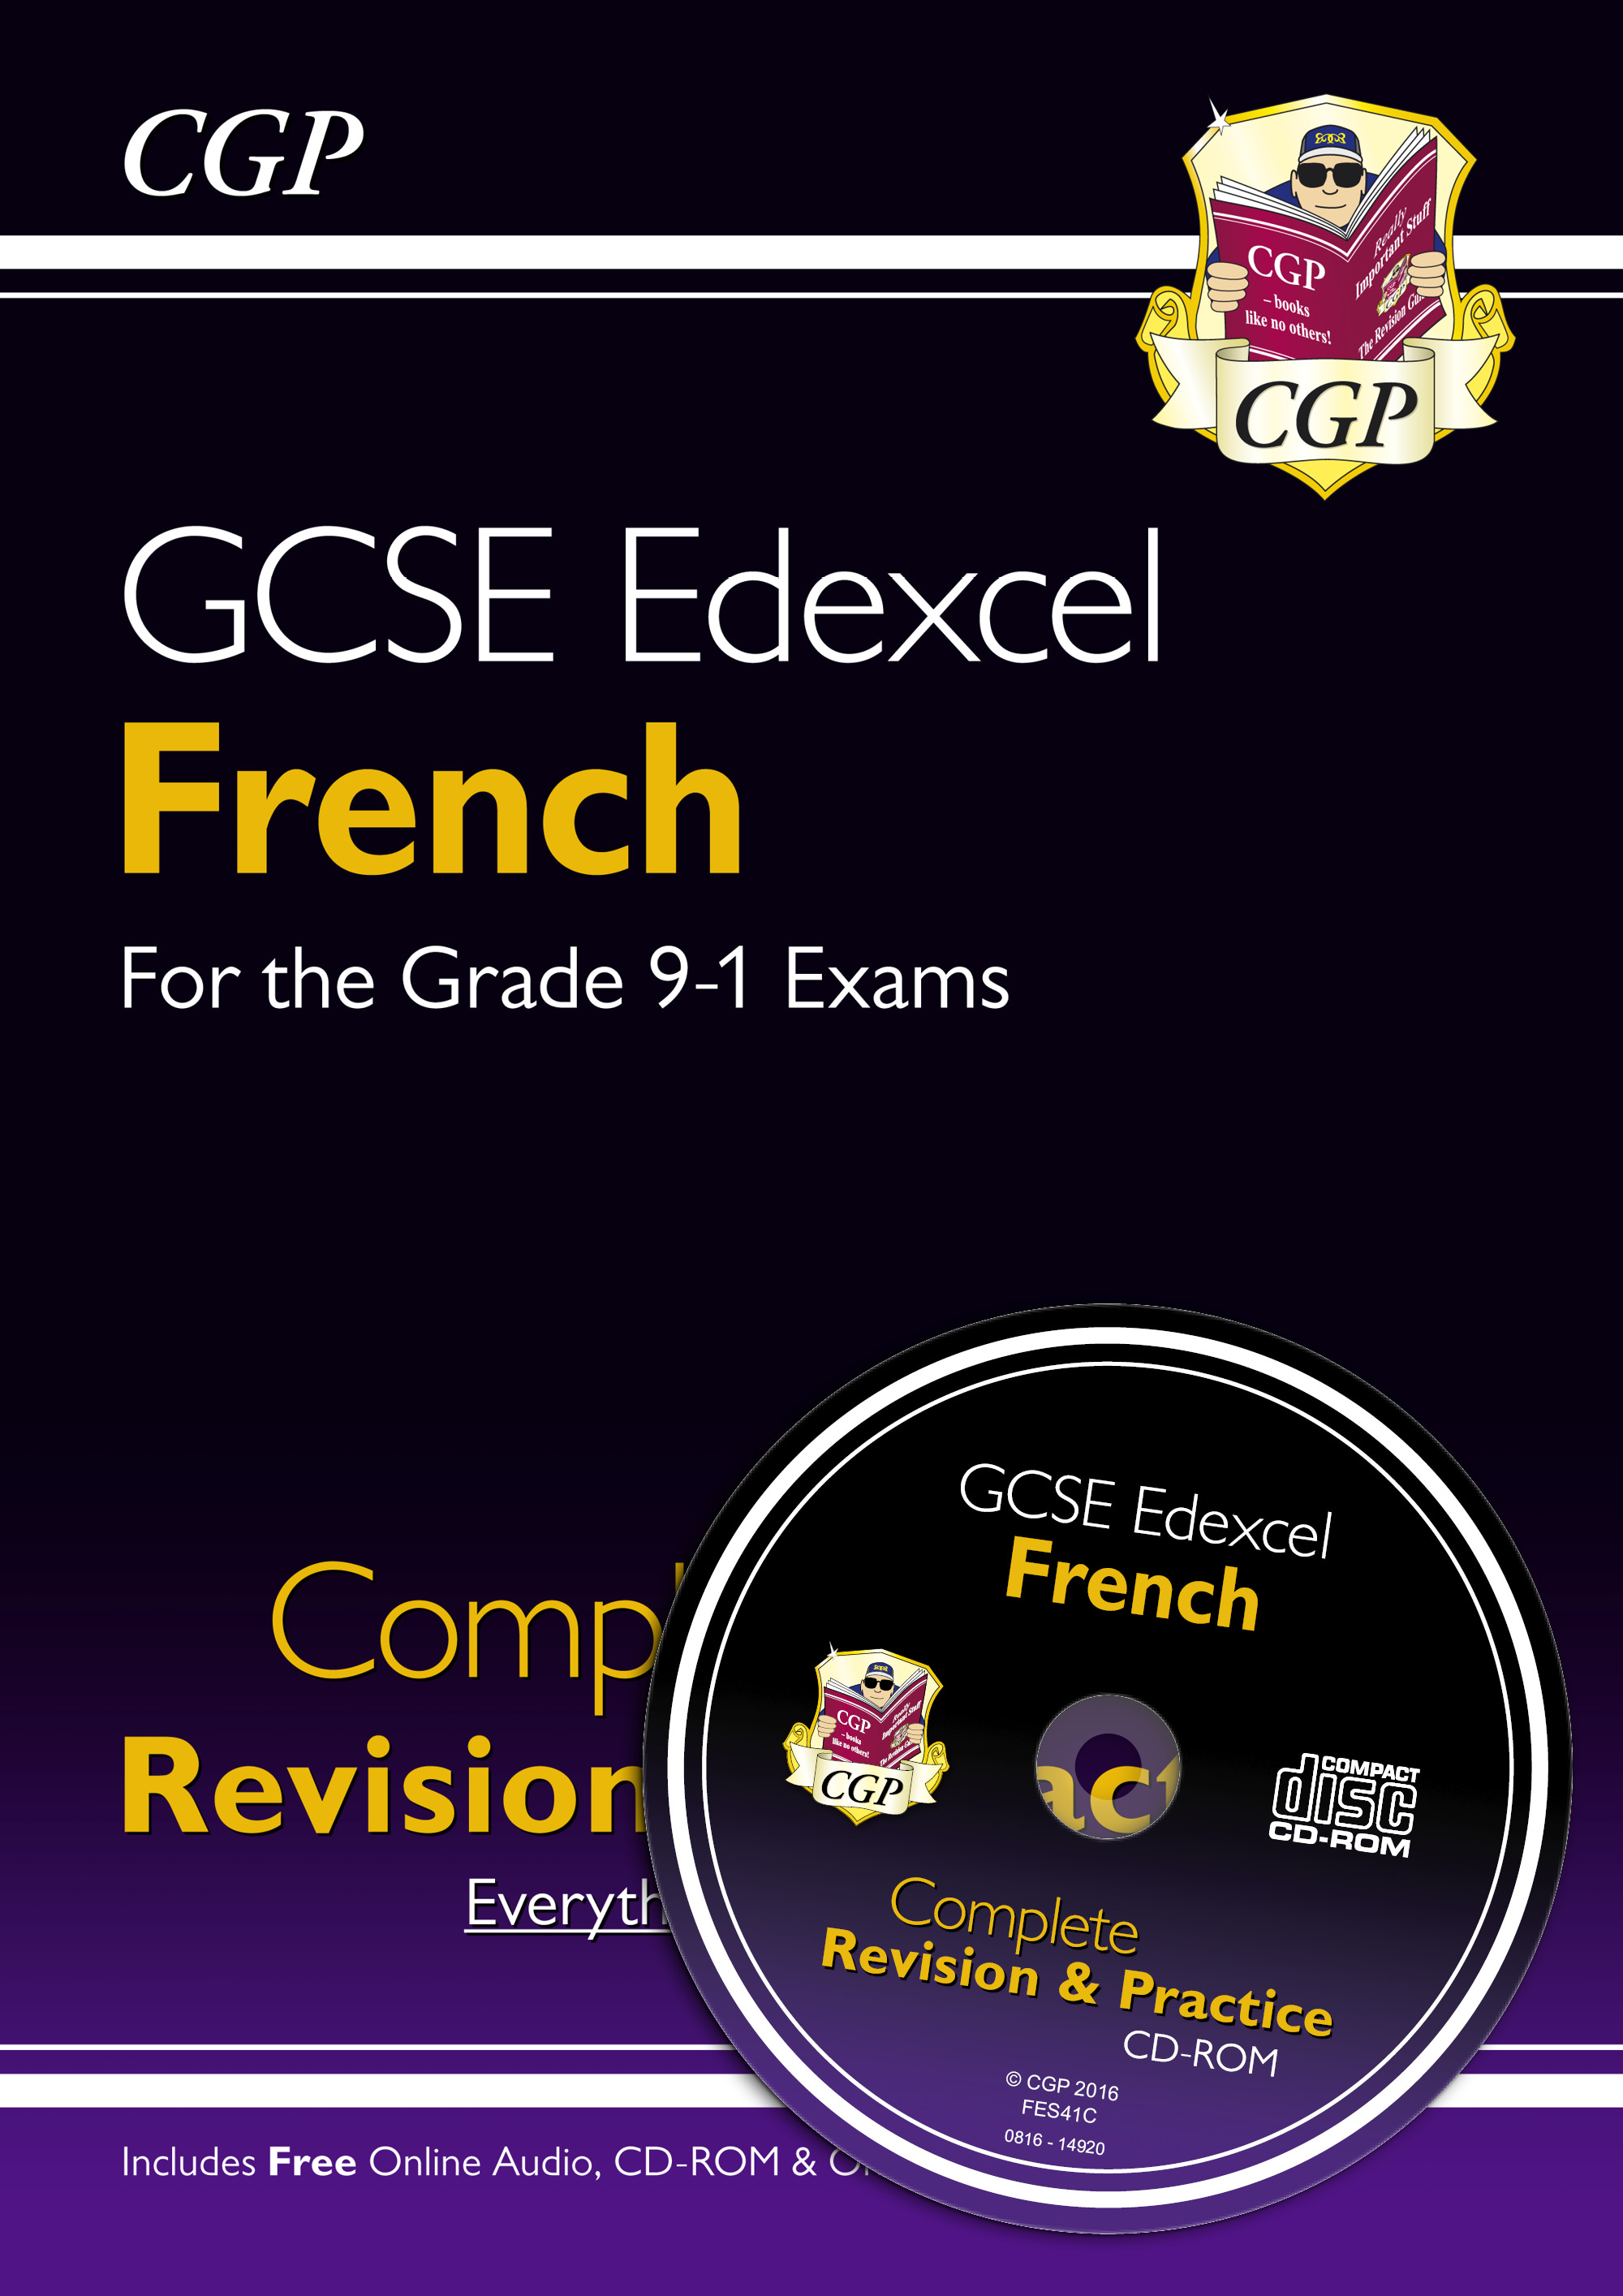 FES41 - New GCSE French Edexcel Complete Revision & Practice (with CD & Online Edition) - Grade 9-1